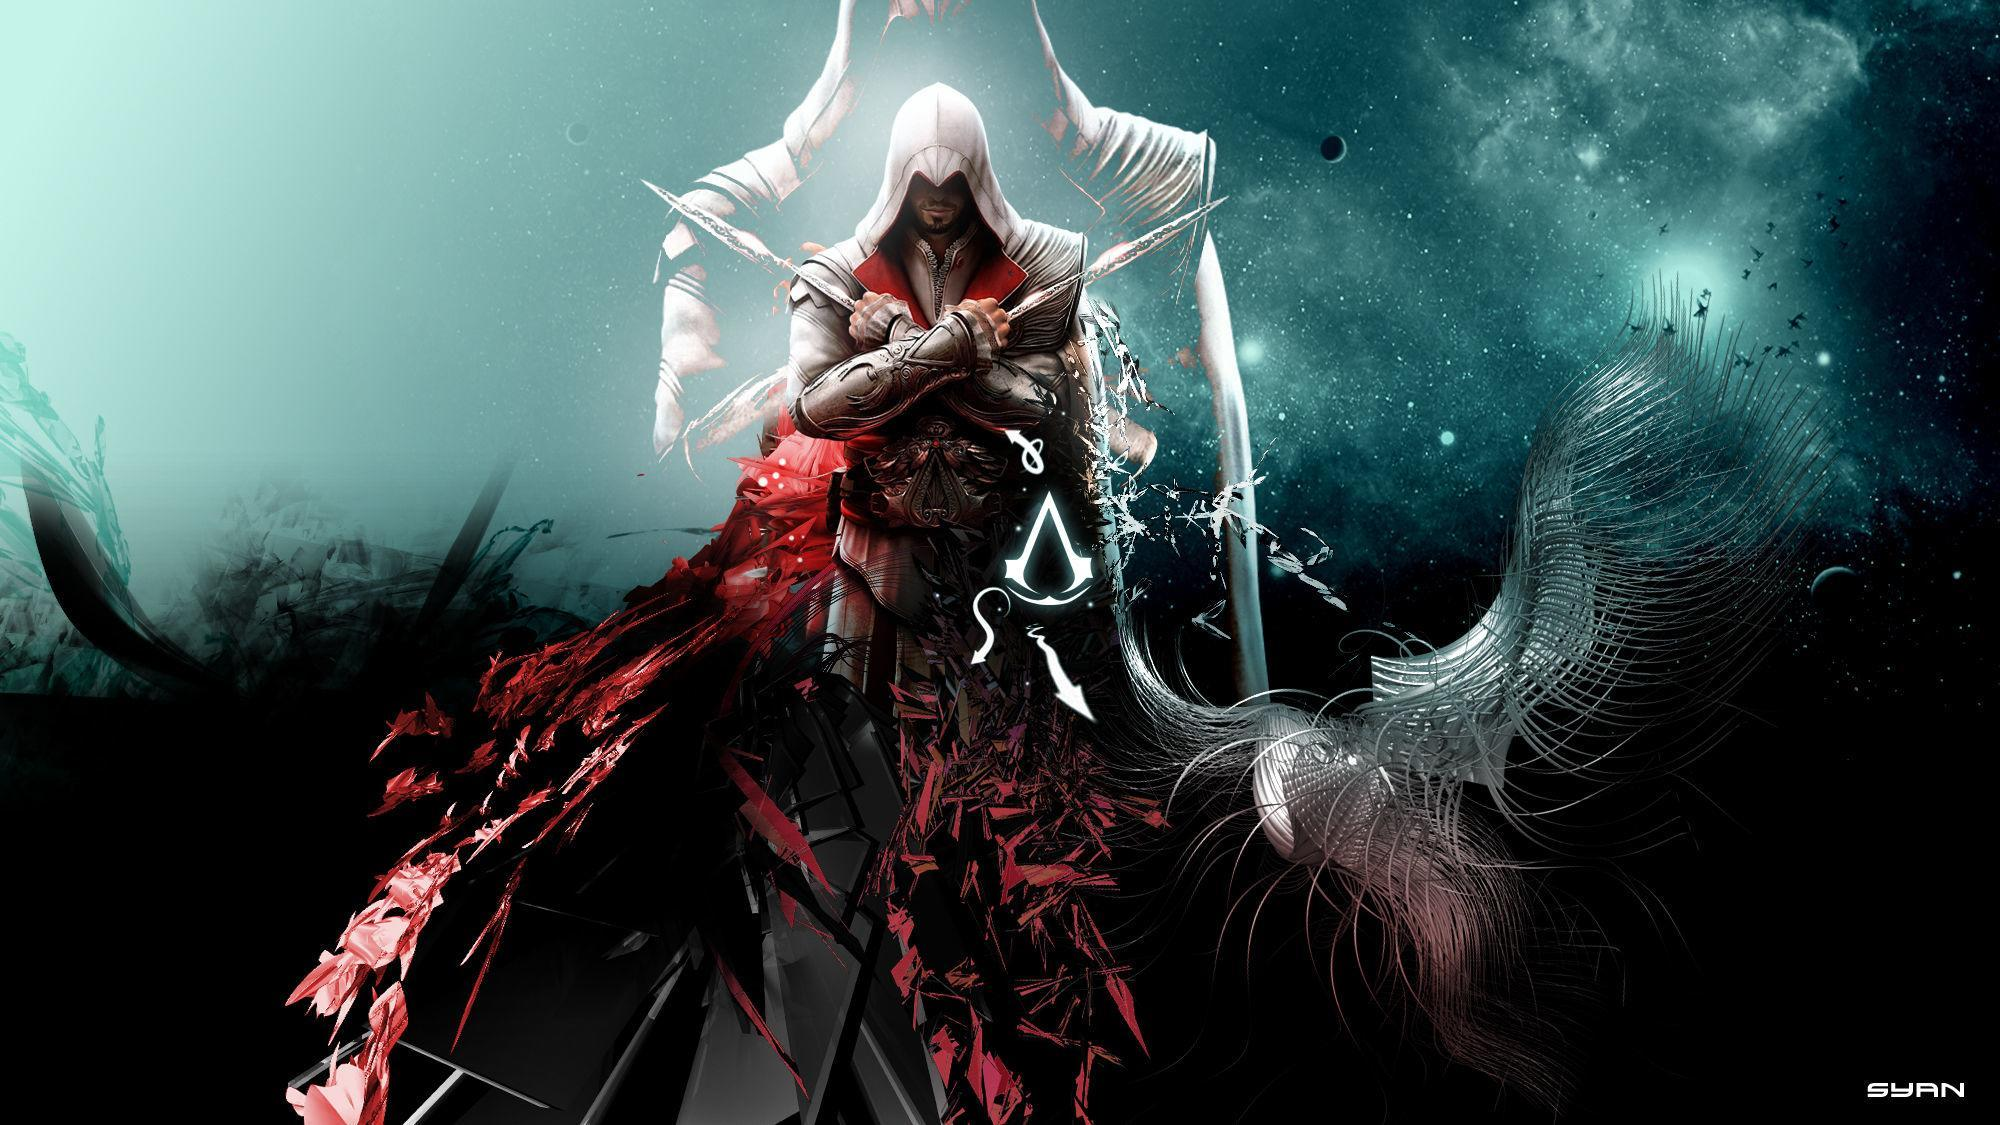 Image - A really cool Assassin's Creed background, I miss playing that game.  - Post 673